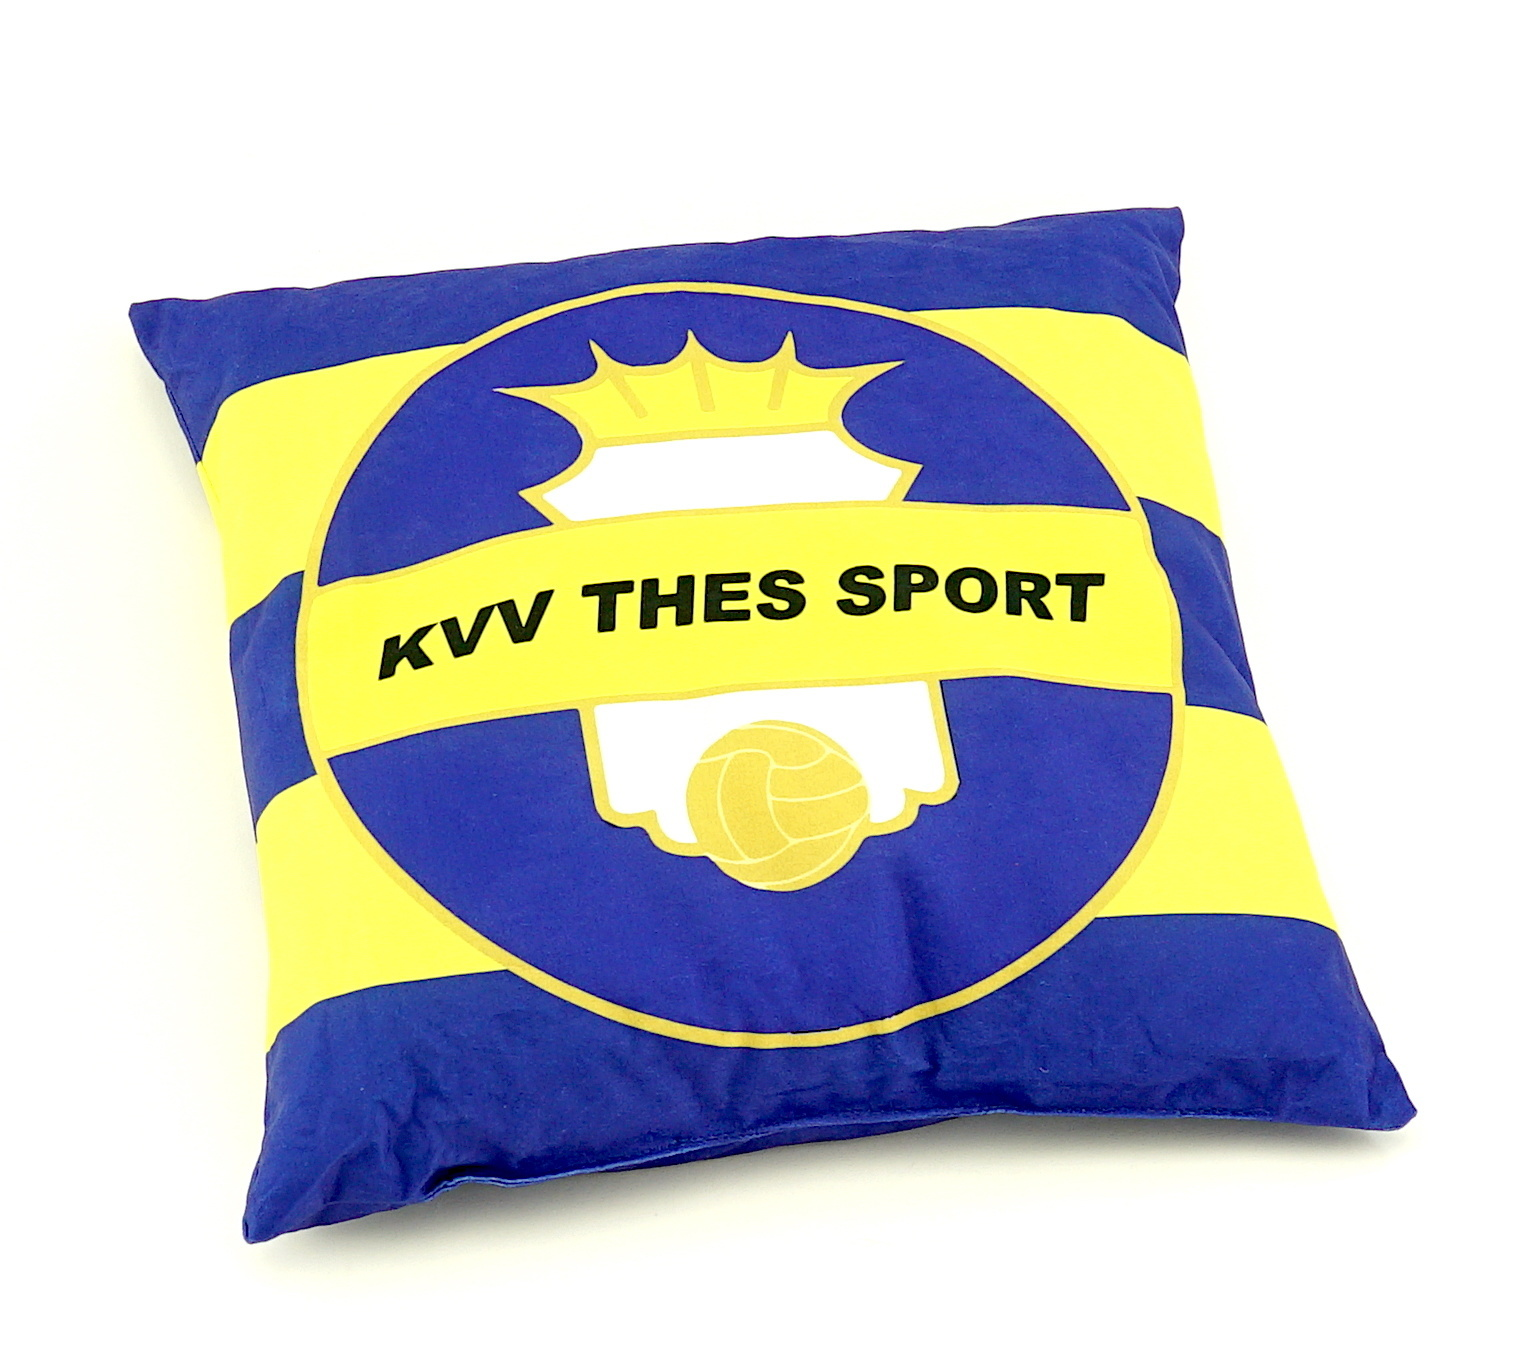 Topfanz Coussin logo/Thes We Can